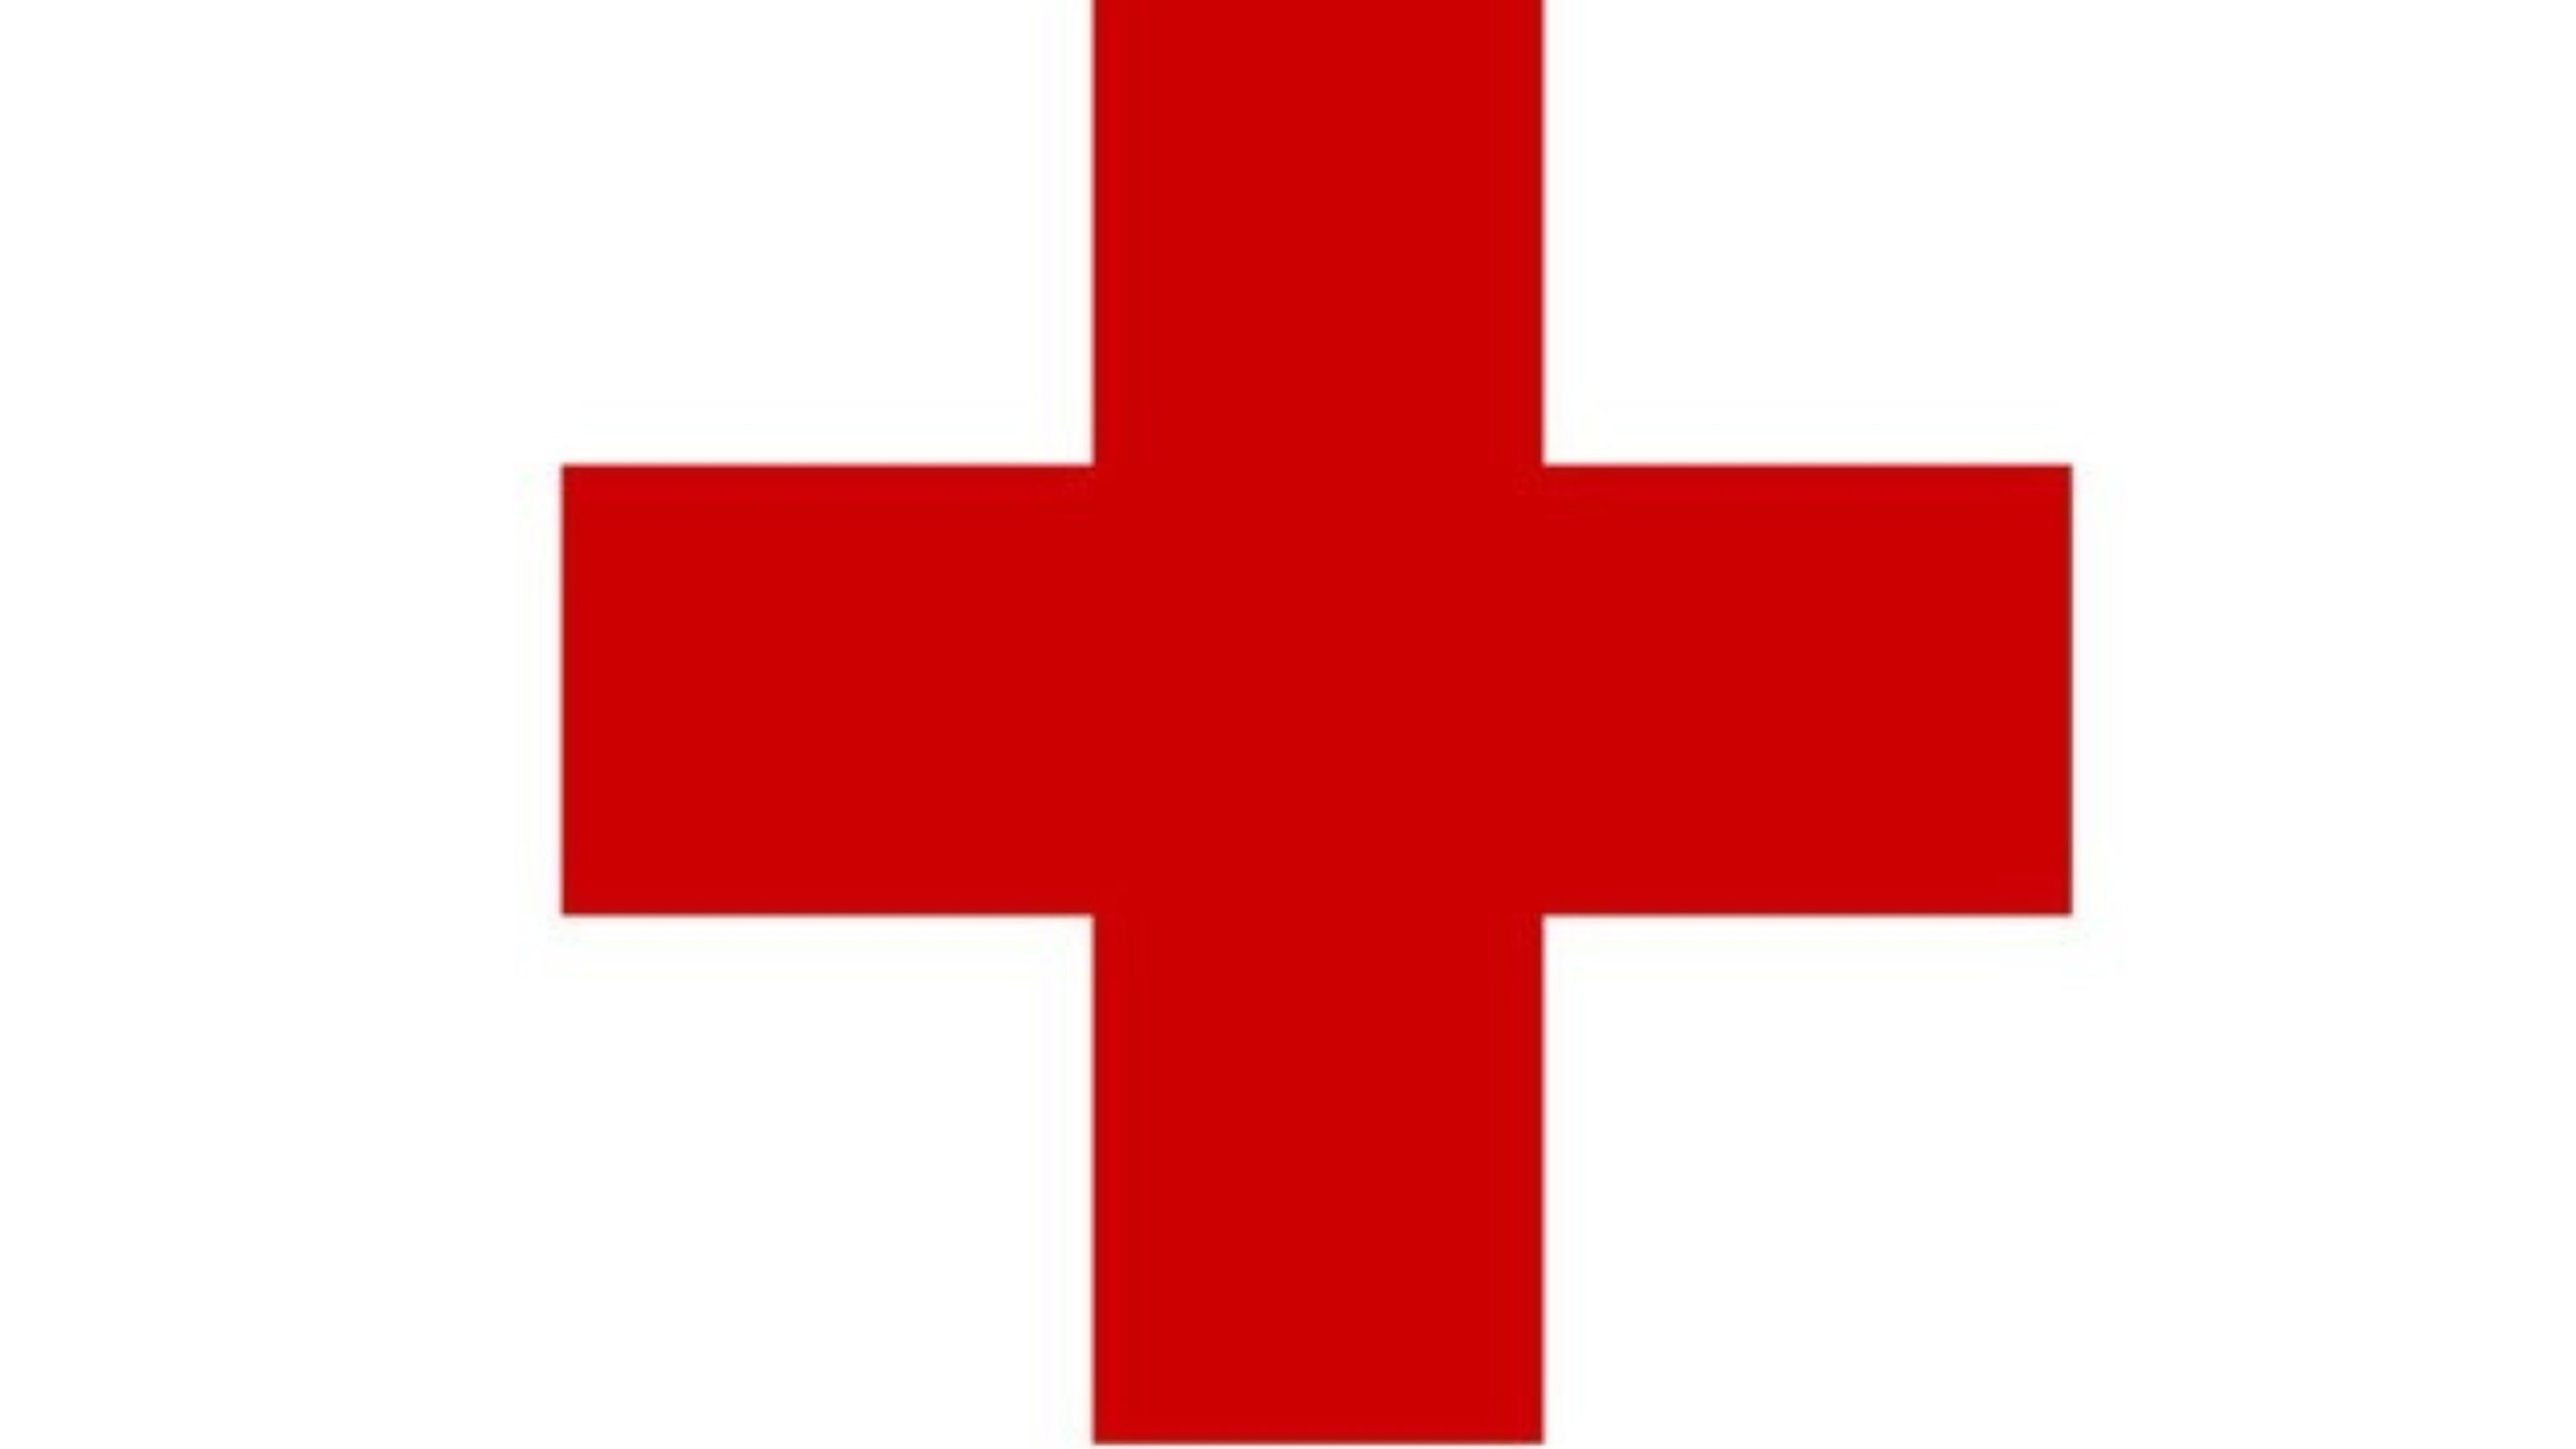 Logos For > American Red Cross Logo Vector Clipart - Free to use ...